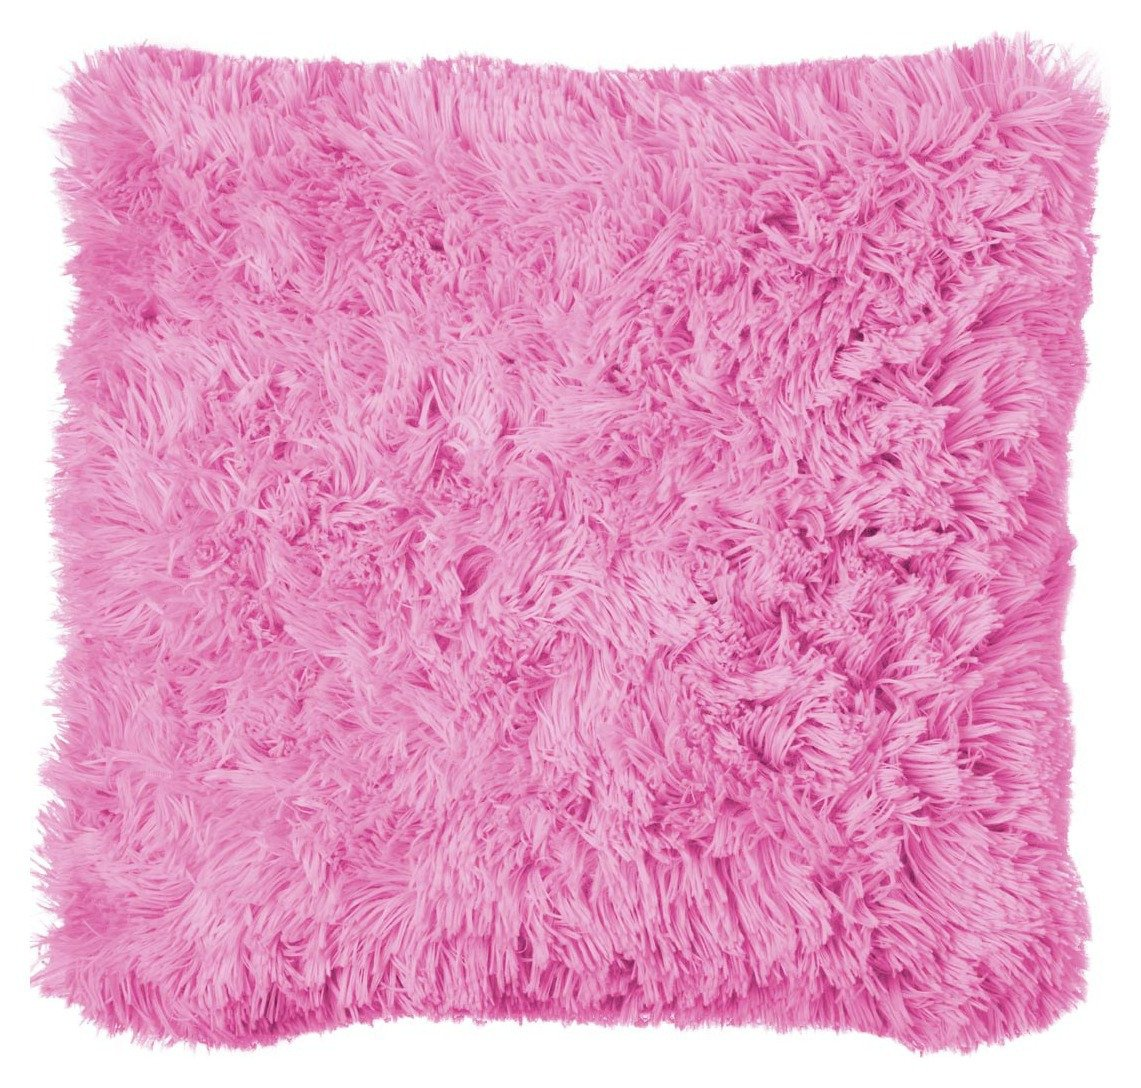 Catherine Lansfield Cuddly Cushion - Pink